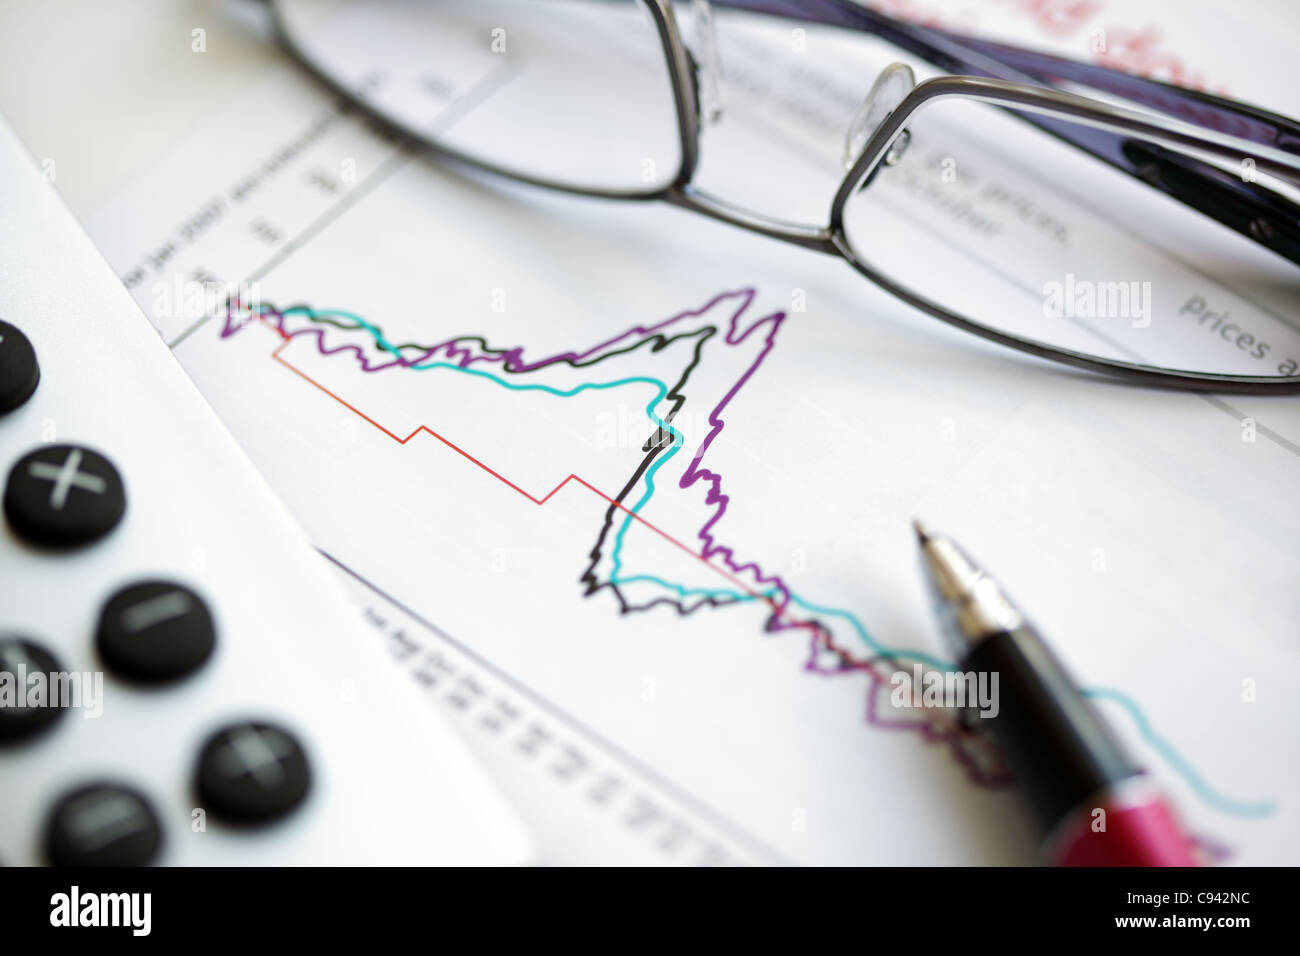 Pen glasses and calculator on stock chart - Stock Image